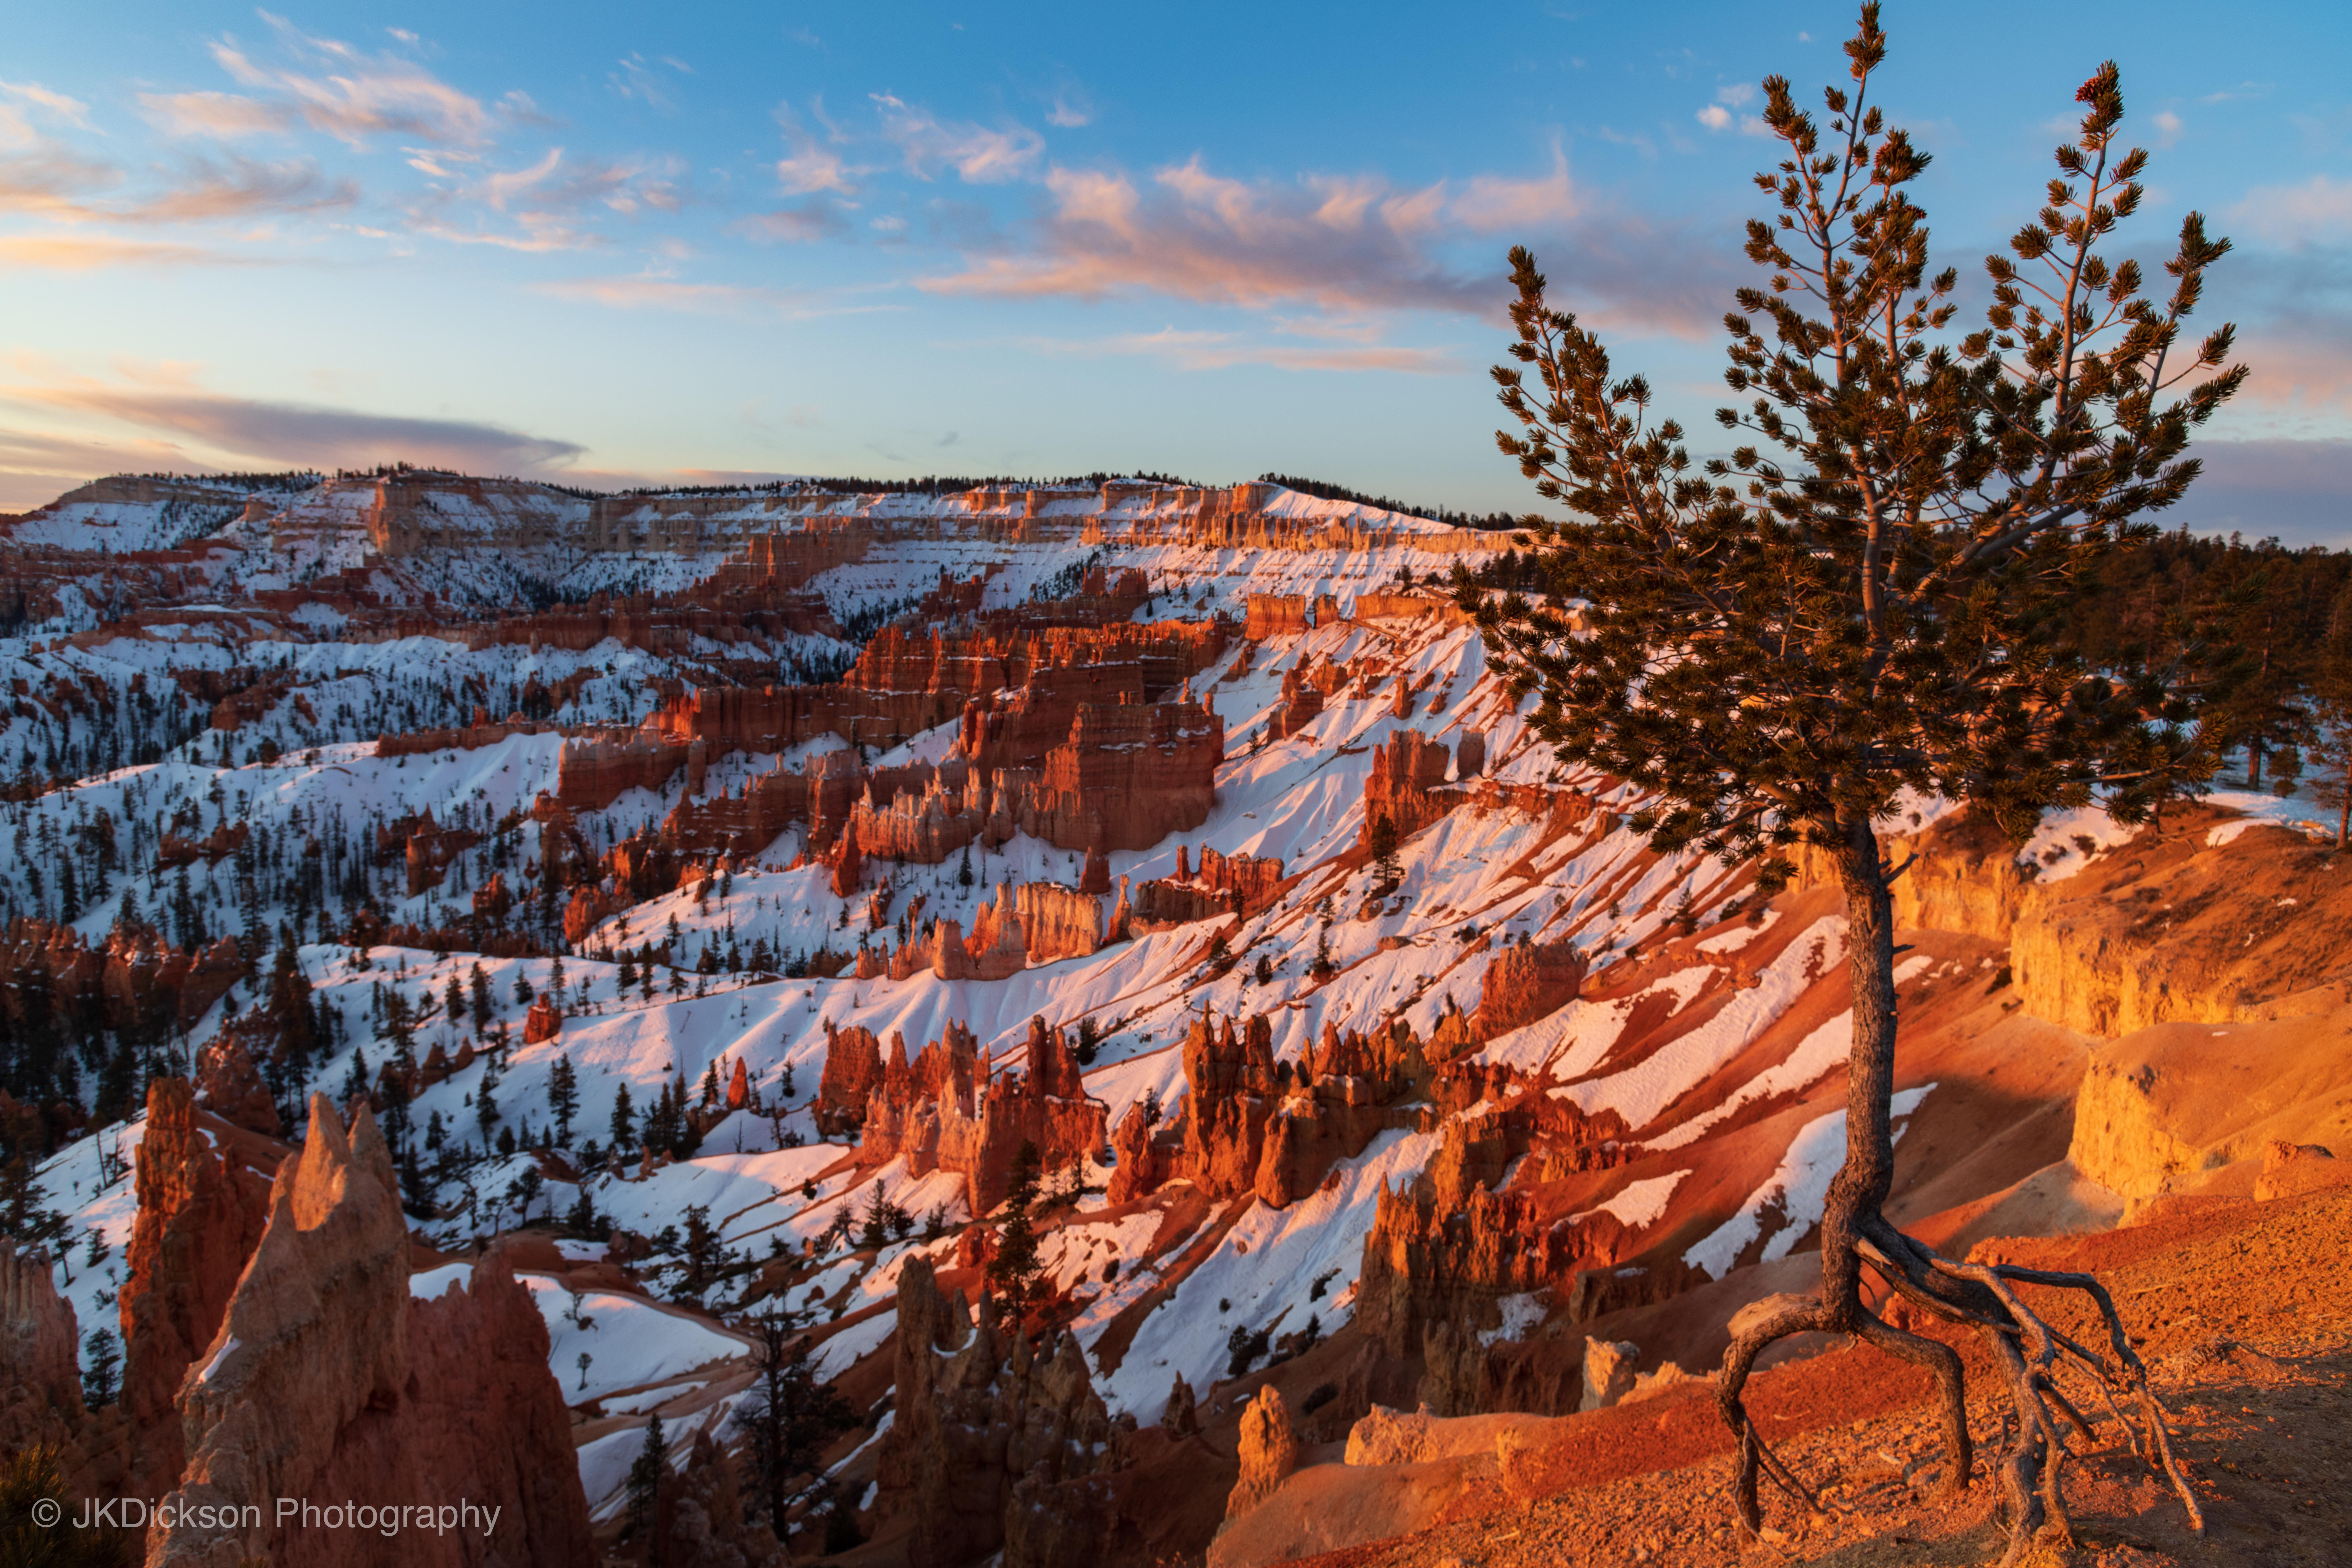 ancient bristlecone pine over bryce canyon 4k 1602606182 - Ancient Bristlecone Pine Over Bryce Canyon 4k - Ancient Bristlecone Pine Over Bryce Canyon 4k wallpapers